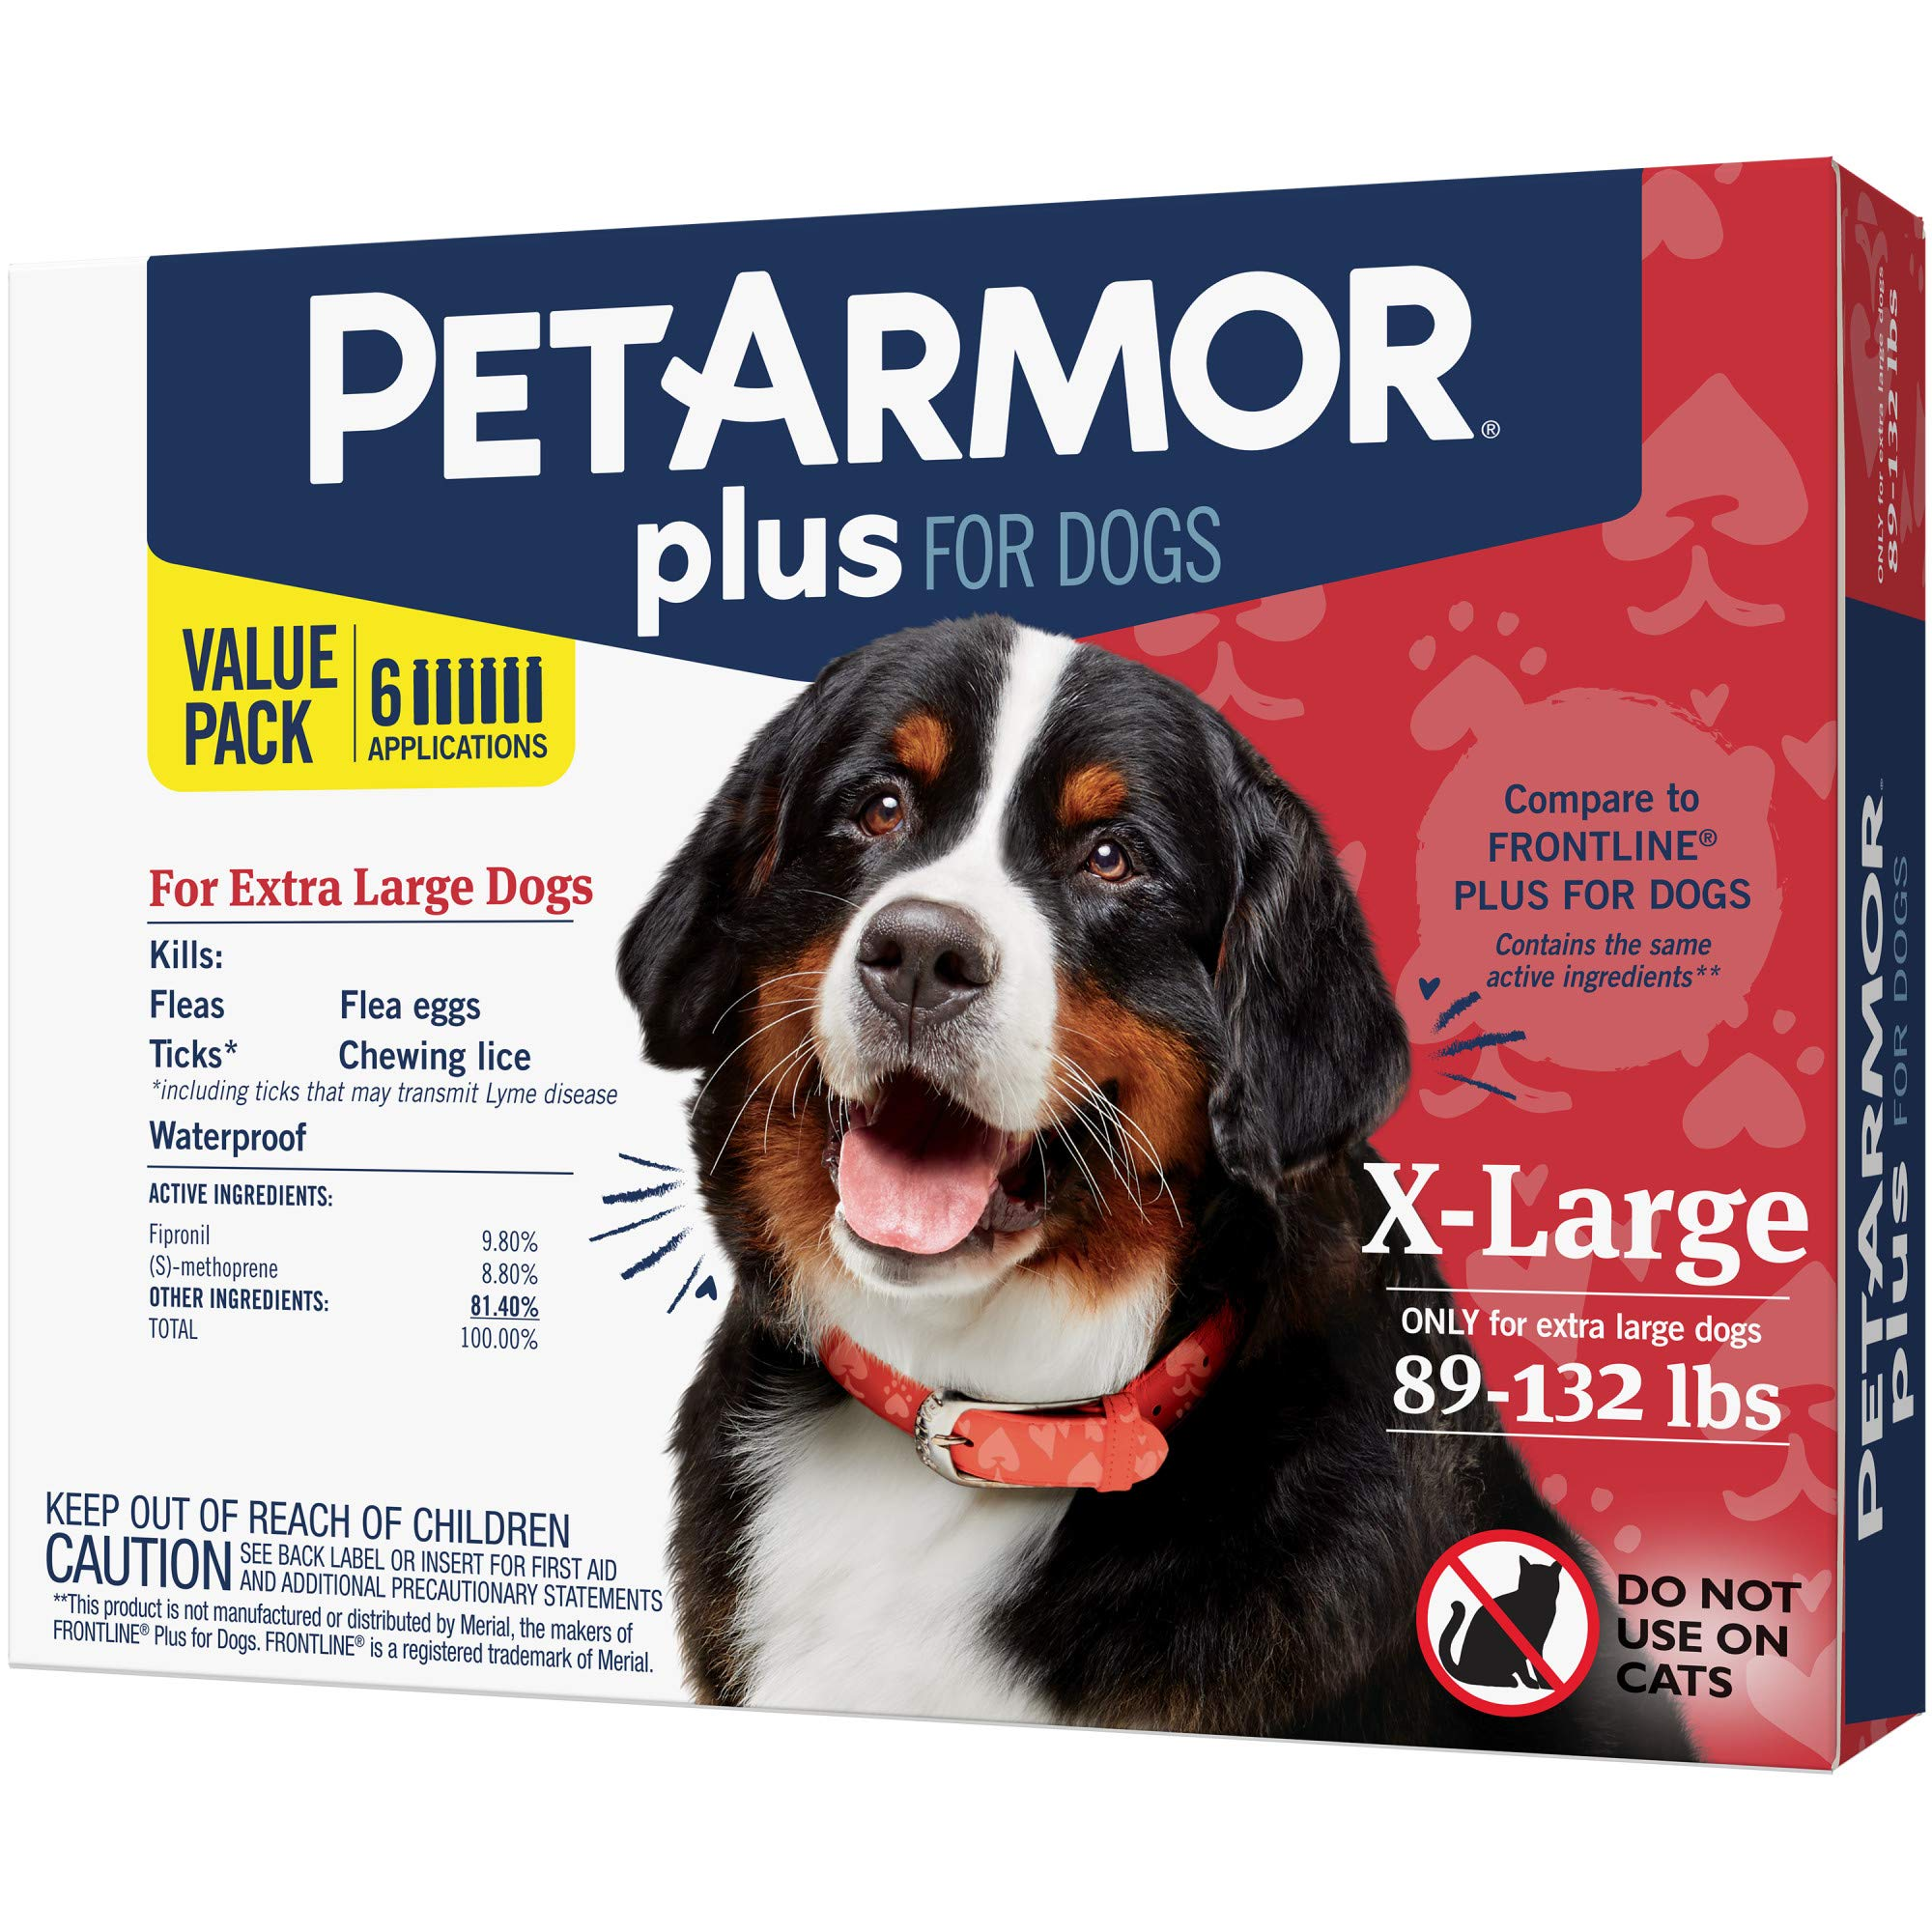 PETARMOR Plus for Dogs Flea and Tick Prevention for Extra Large Dogs (89-132 Pounds), Fast-Acting Topical Dog Flea Treatment, 6 Month Supply by PETARMOR